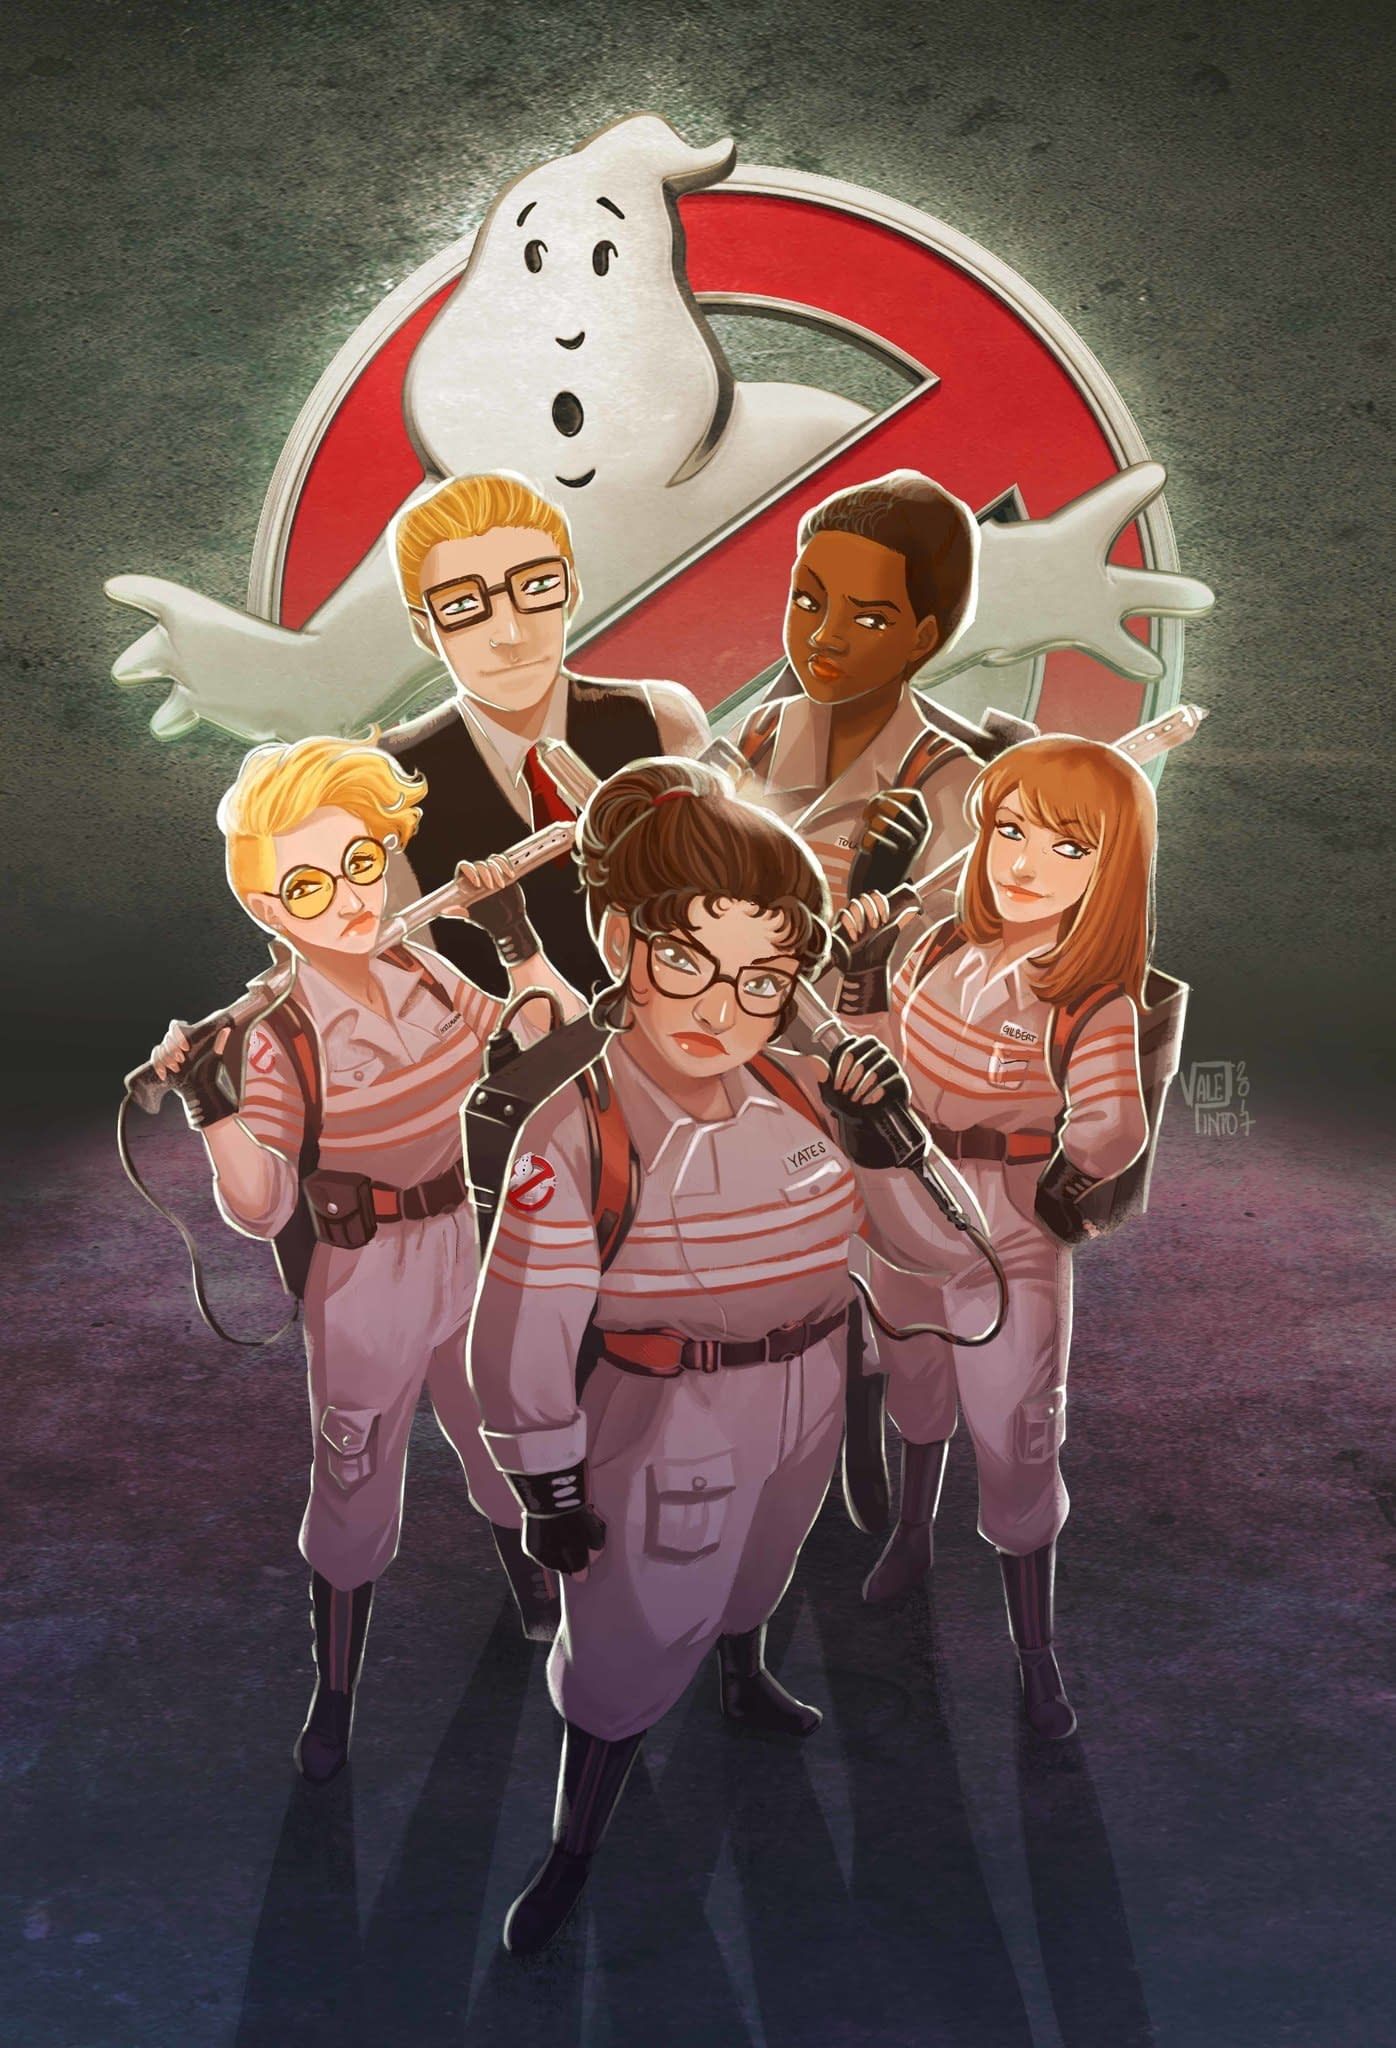 2016 Ghostbusters To Answer The Call Again In New Mini-Series By Kelly Thompson And Corin Howell From IDW